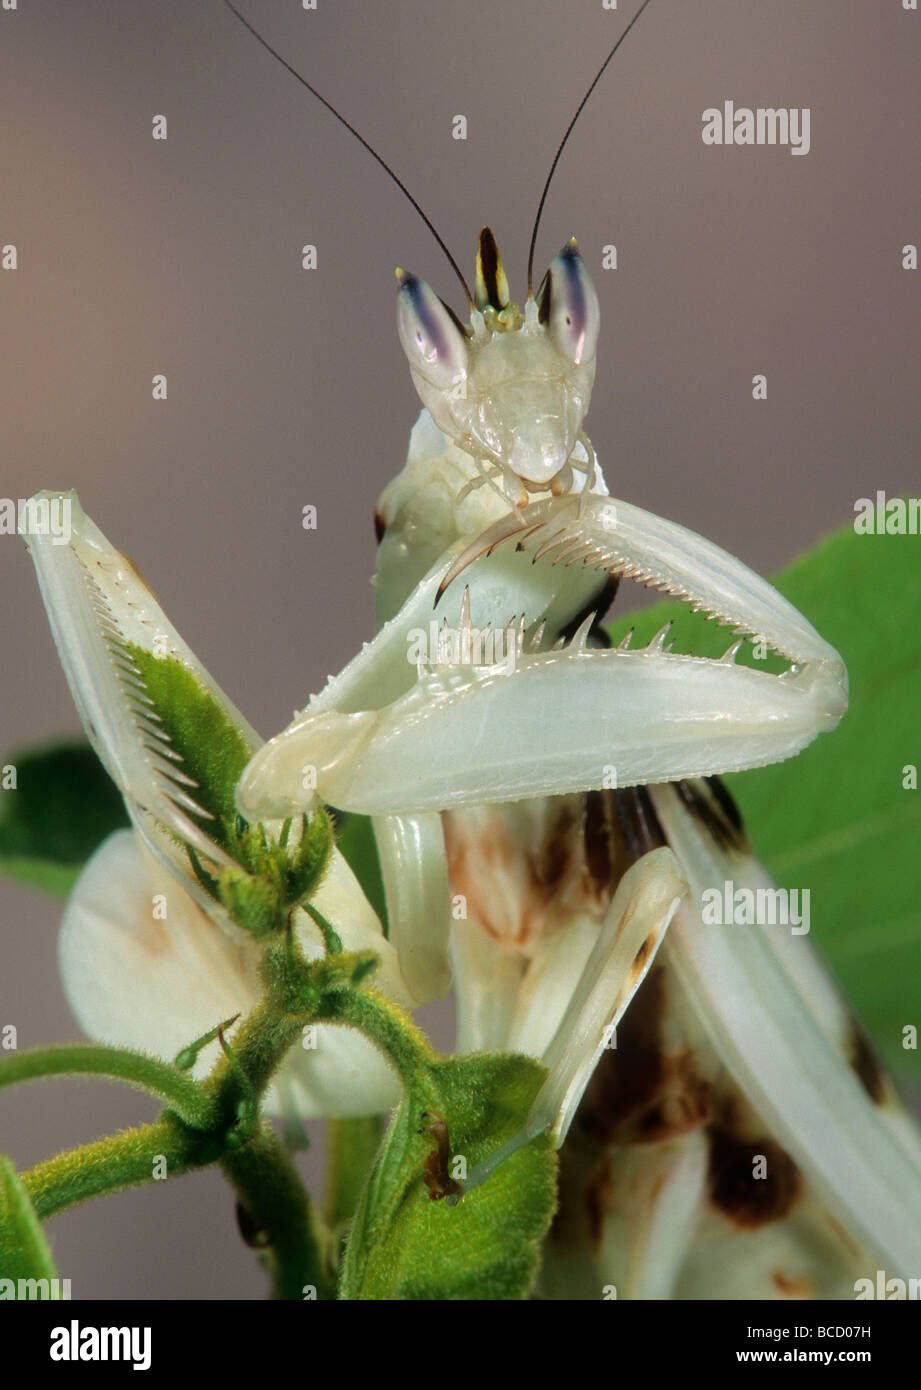 CLAW-CLEANING ORCHID MANTID (Hymenopus coronatus) native to the Malay Peninsula. - Stock Image